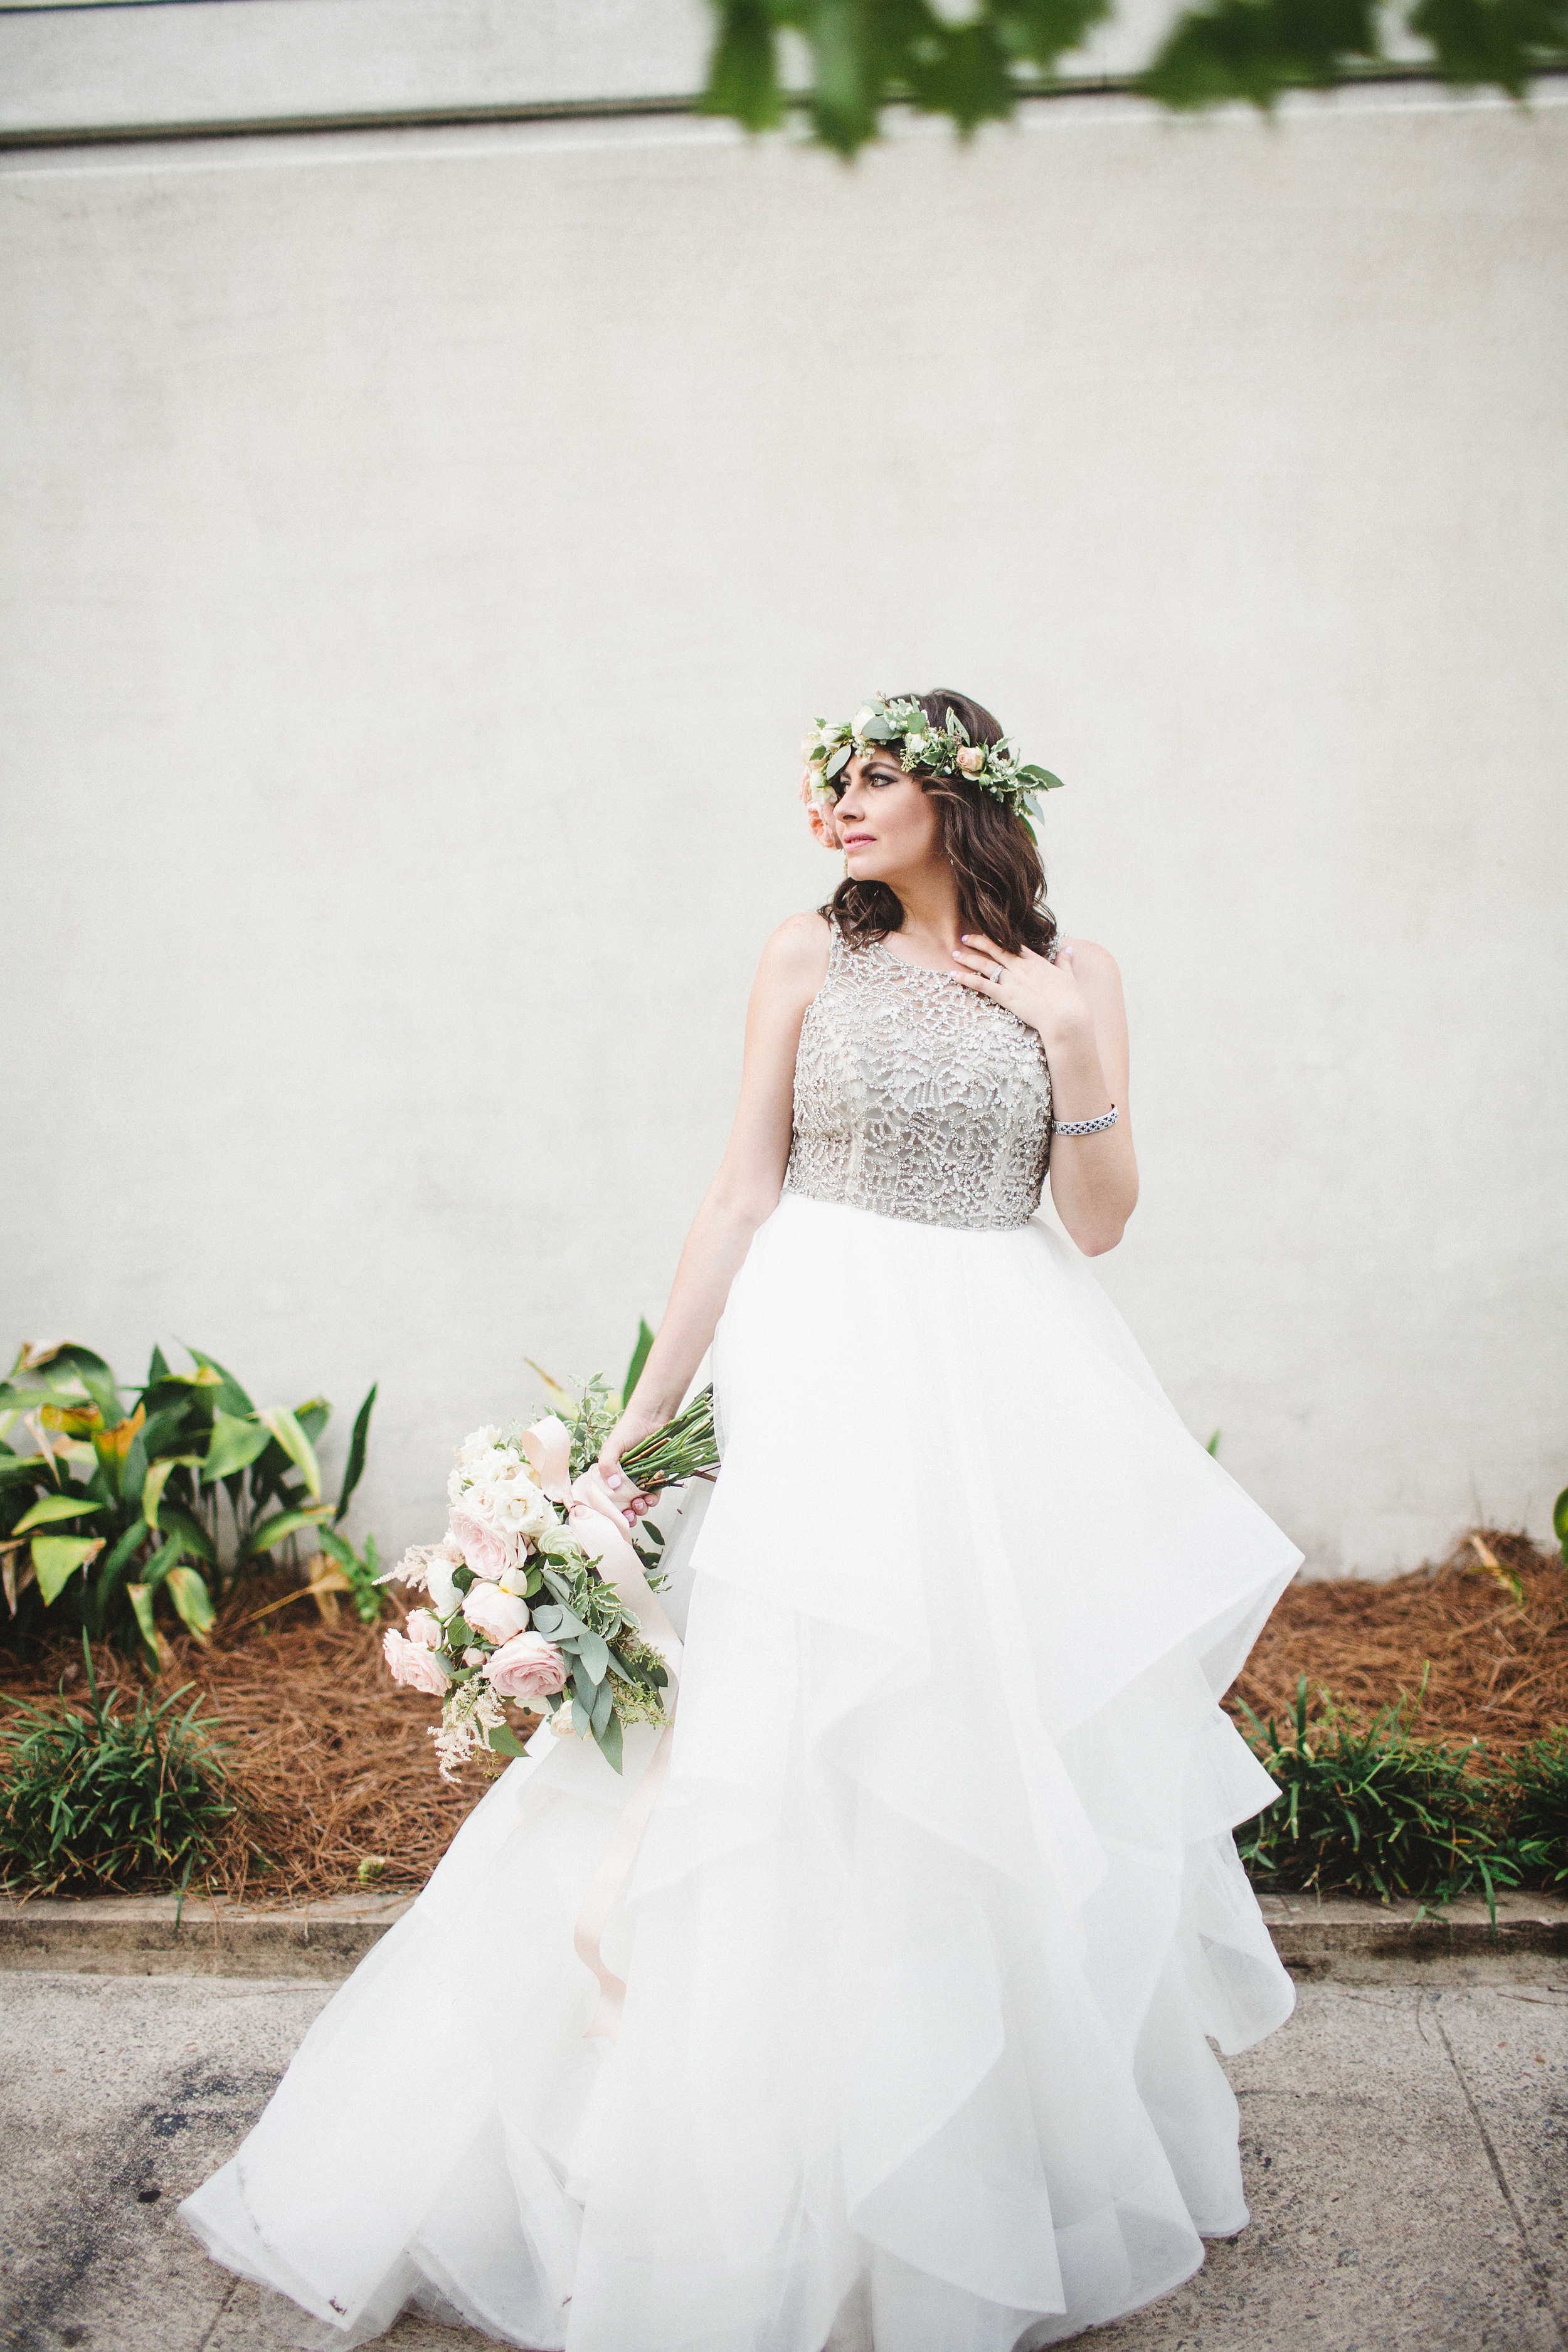 daniela-and-pedro-wedding-izzy-hudgins-photography-a-to-zinnias-whitfield-square-charles-h-morris-center-wedding-ivoyy-and-beau-bridal-boutique-dorie-hayley-paige-savannah-wedding-planner-savannah-bridal-boutique-savannah-weddings-35.jpg